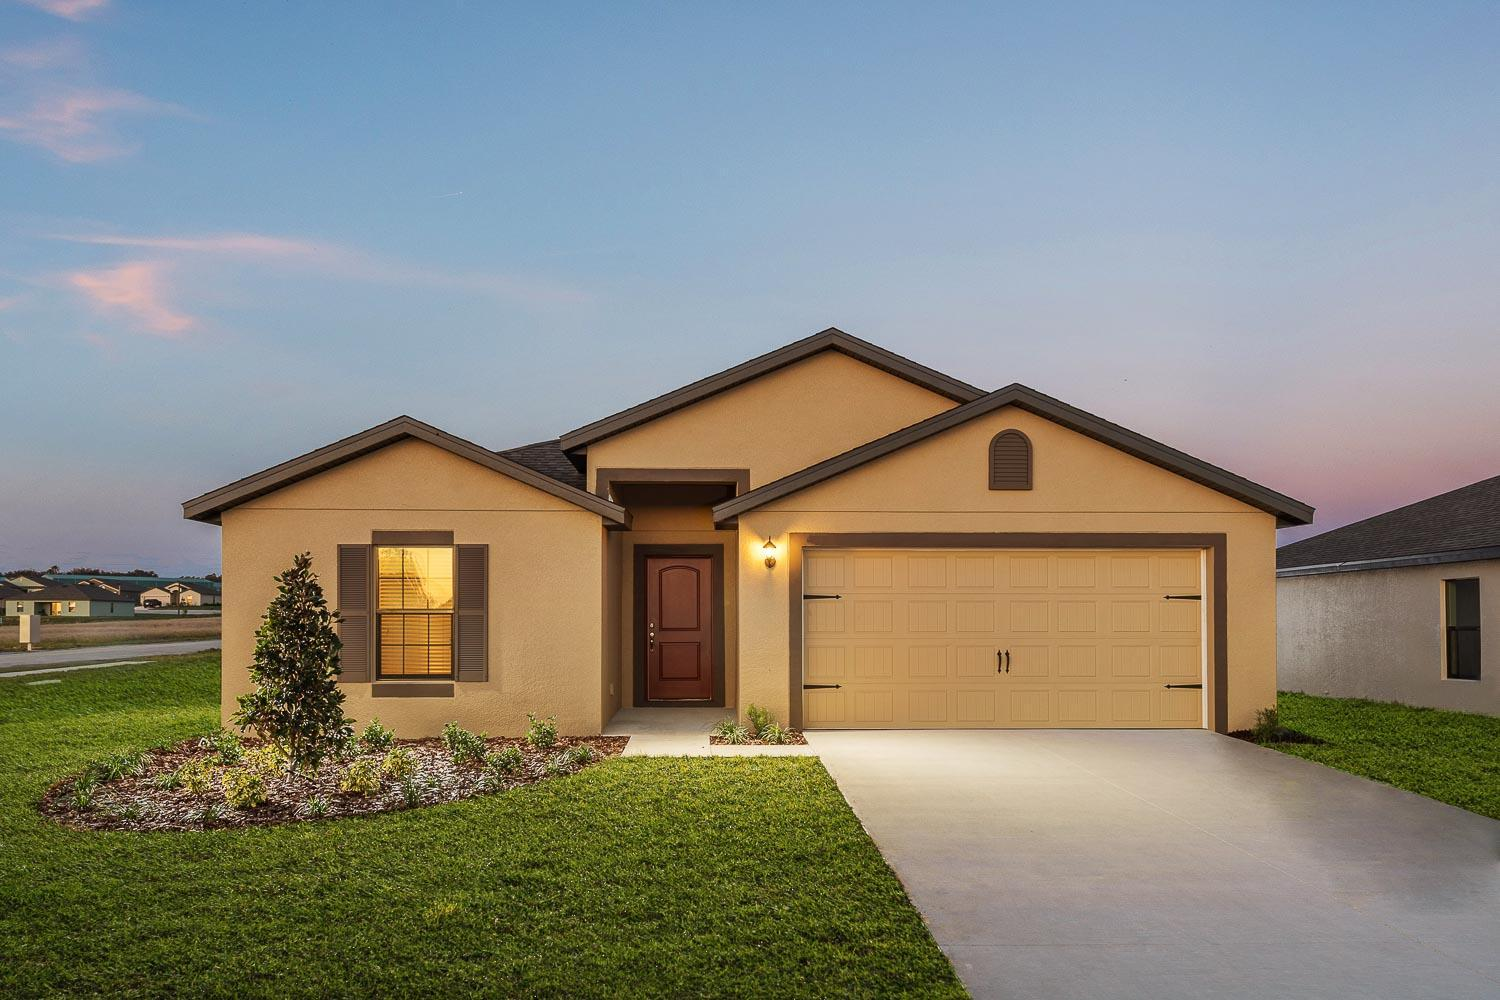 The Capri:The Ridge at Swan Lake by LGI Homes